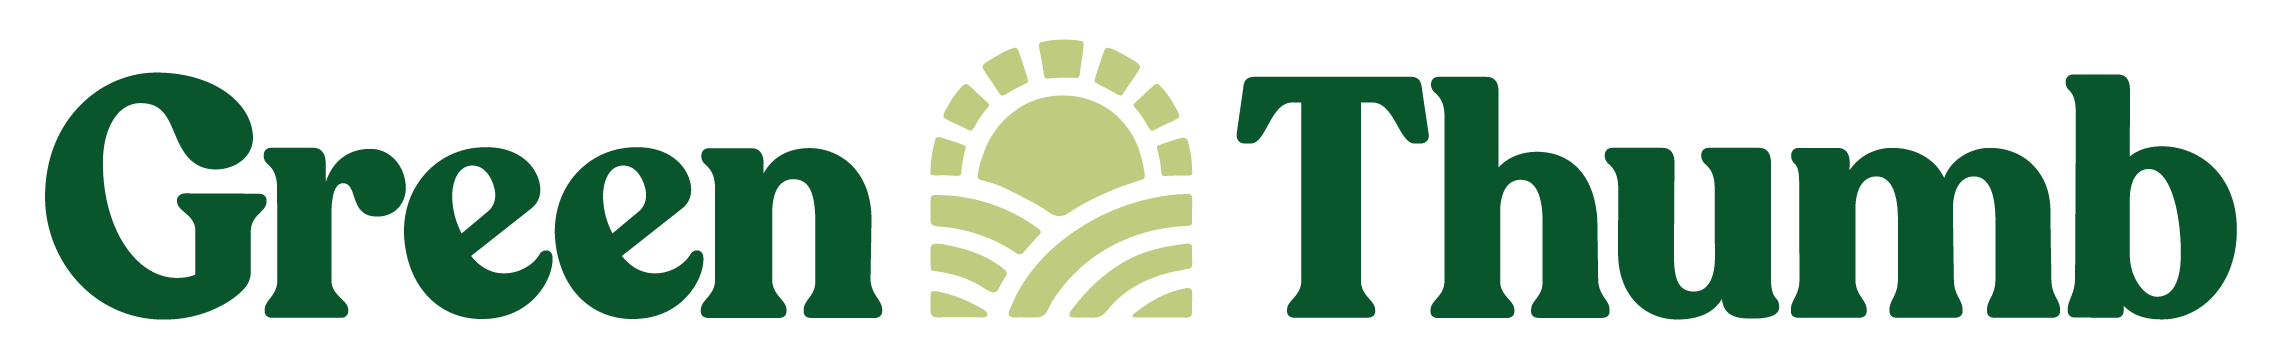 Green Thumb Industries logo